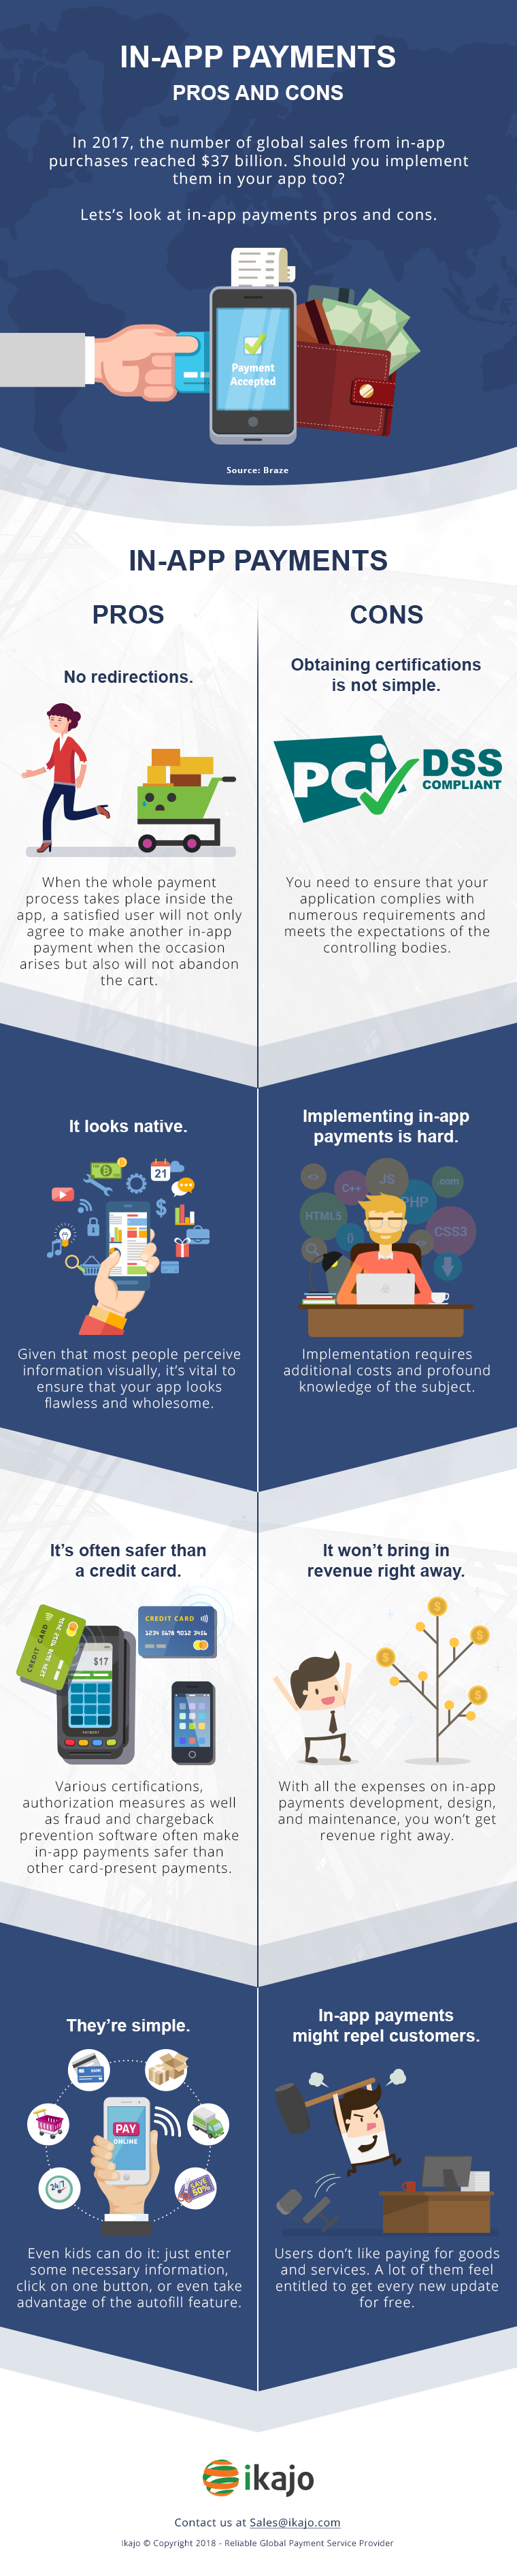 In-app payments pros and cons infographics